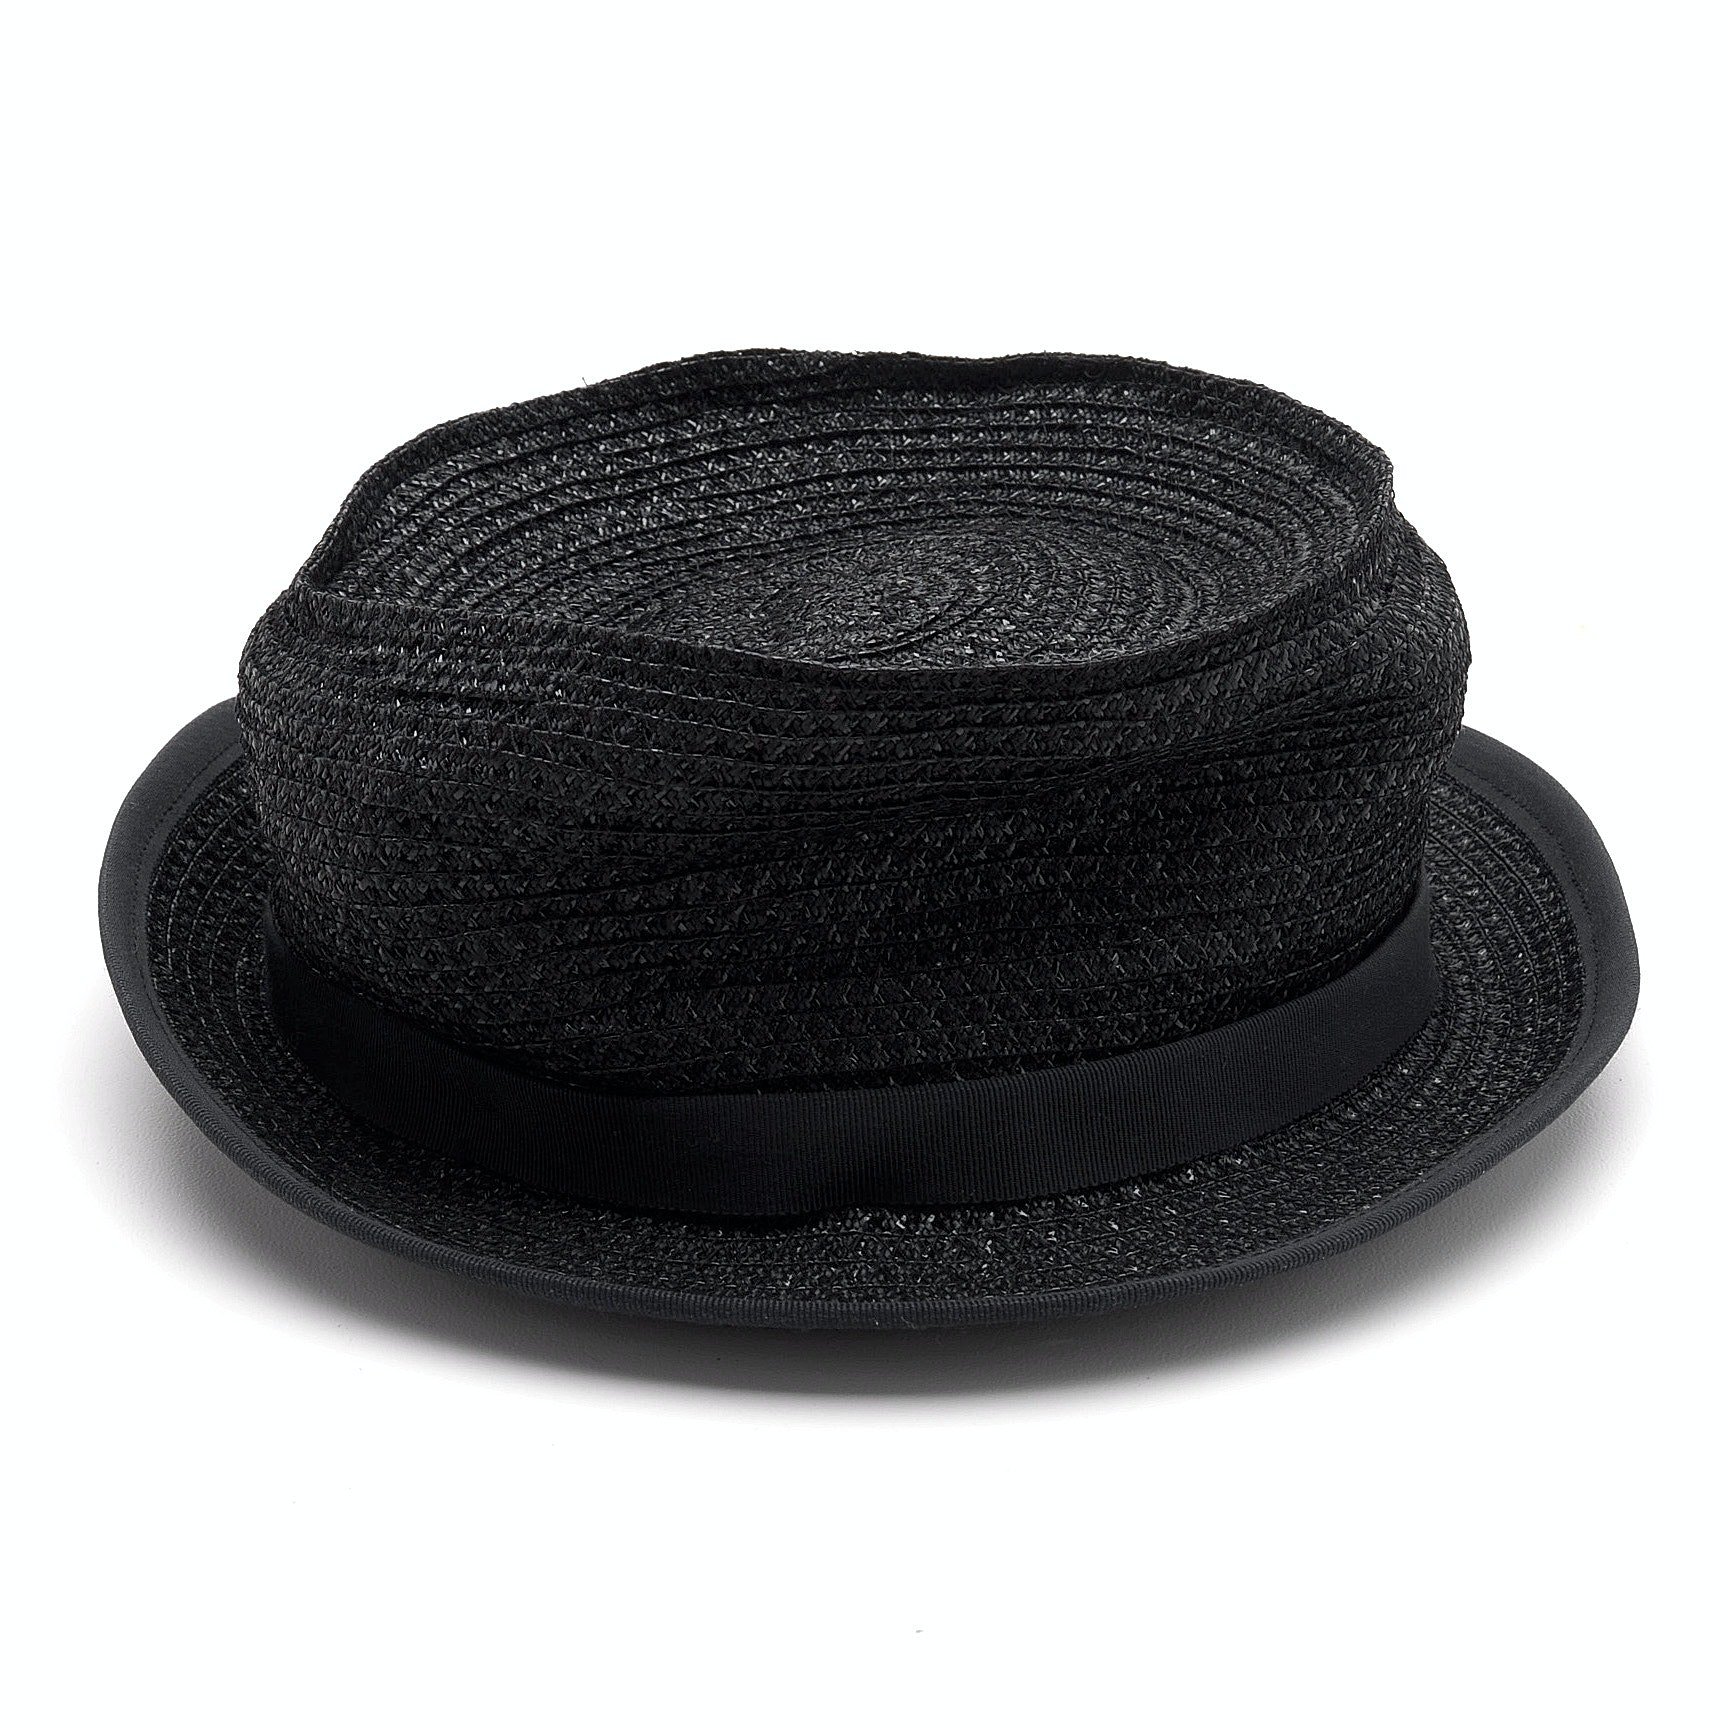 Jennifer Hoertz of New York Black Cellophane Pork Pie Hat with Black Grosgrain Ribbon and Upturned Brim